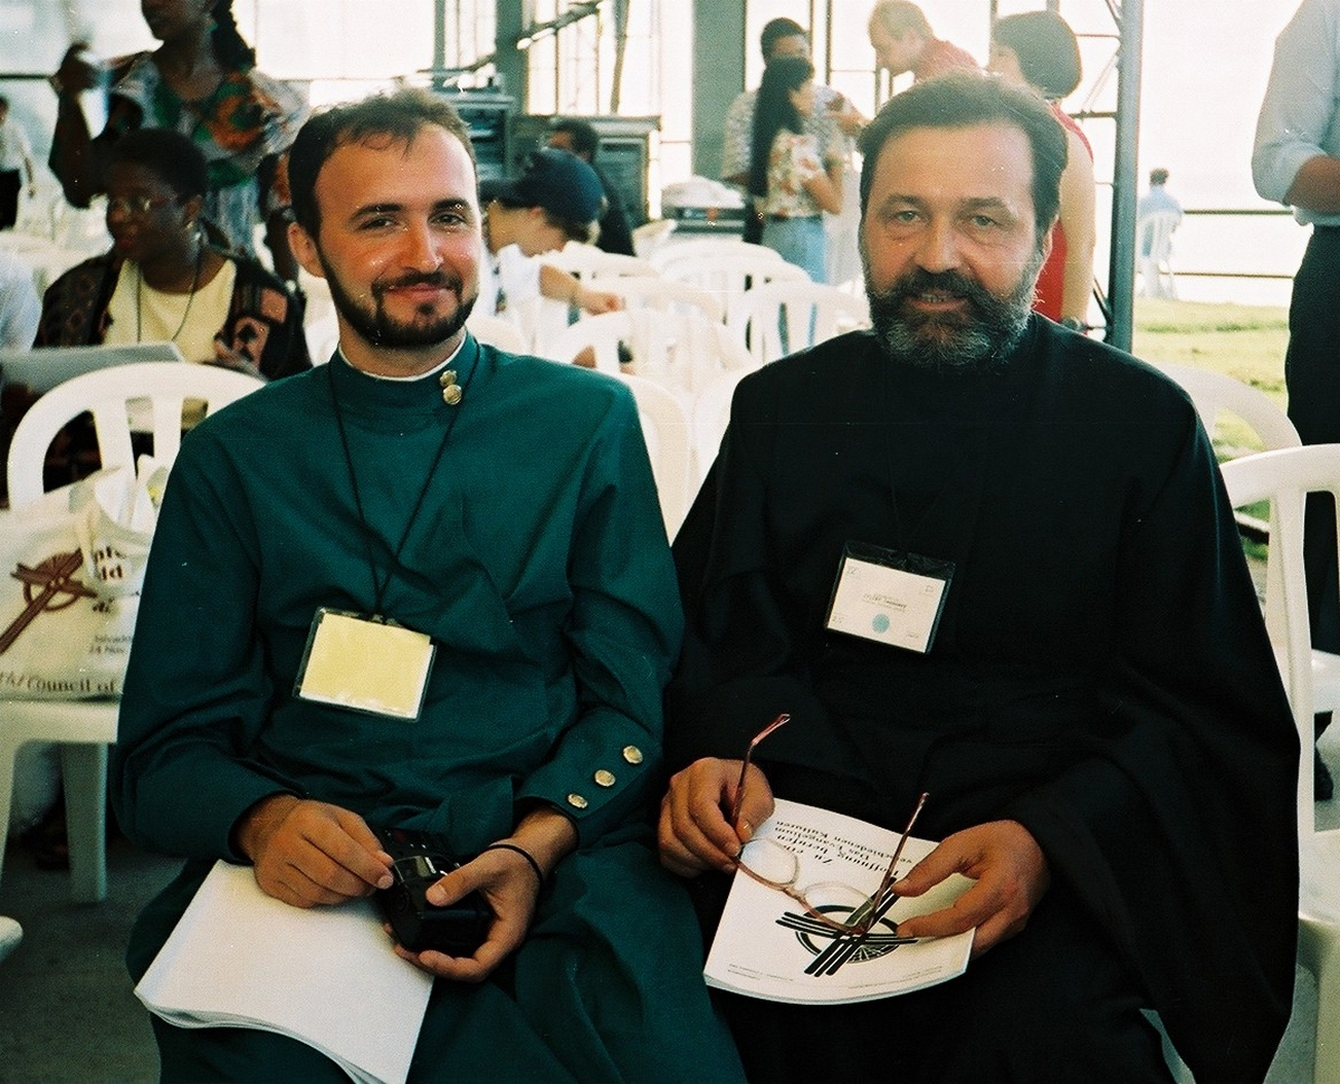 Archimandrite January (on a right) and a priest from Romania at a conference in Brazil, 1996